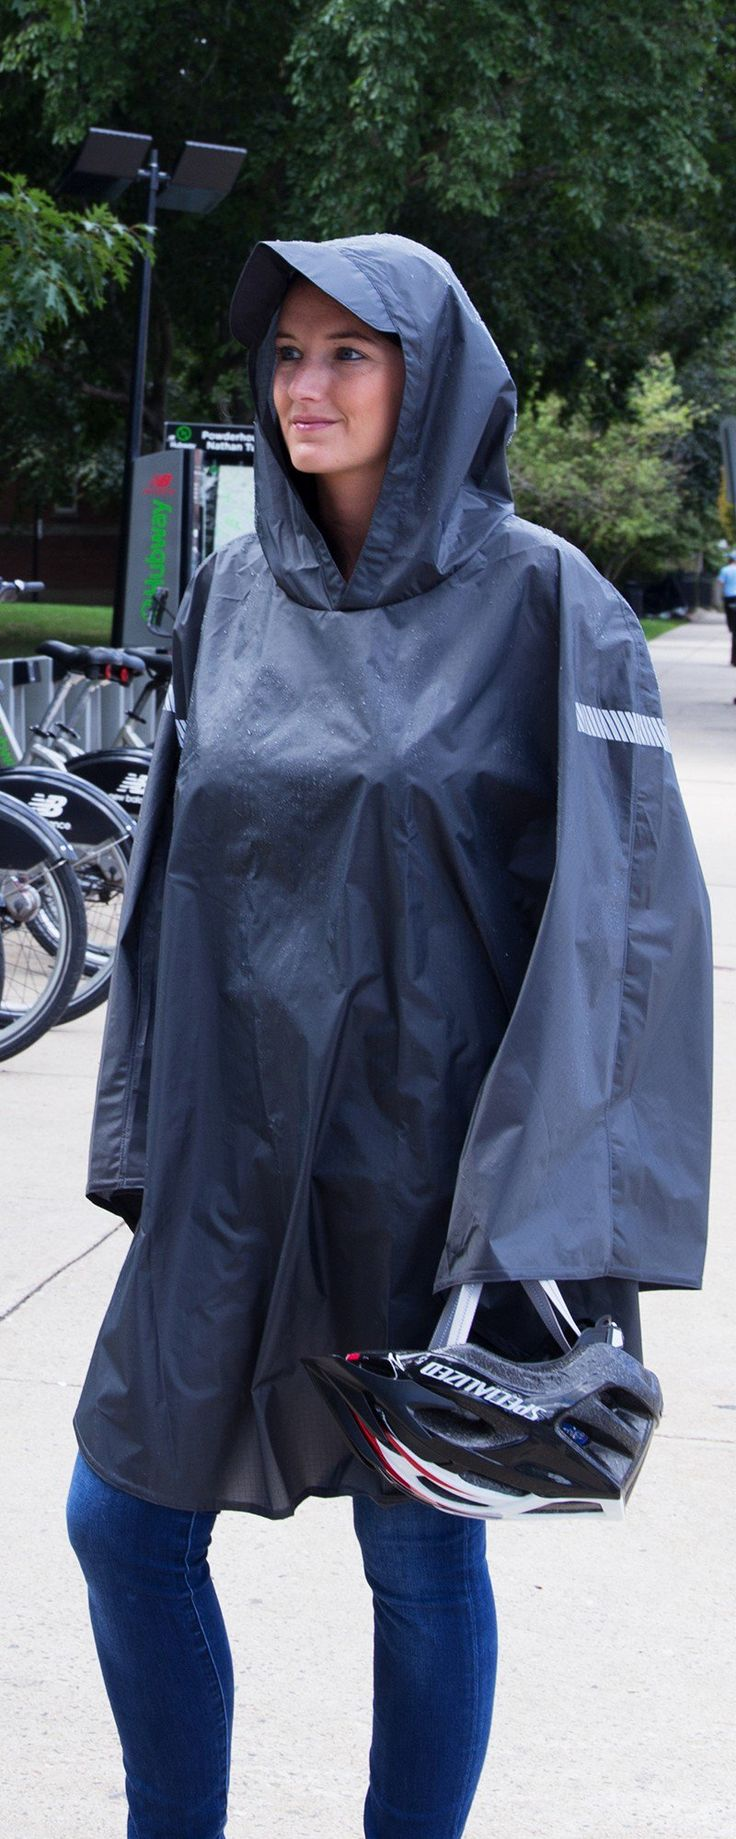 This Made in the USA rain cape features reflective details, a brimmed hood, and thumb loops for dry hiking, biking, or walking.